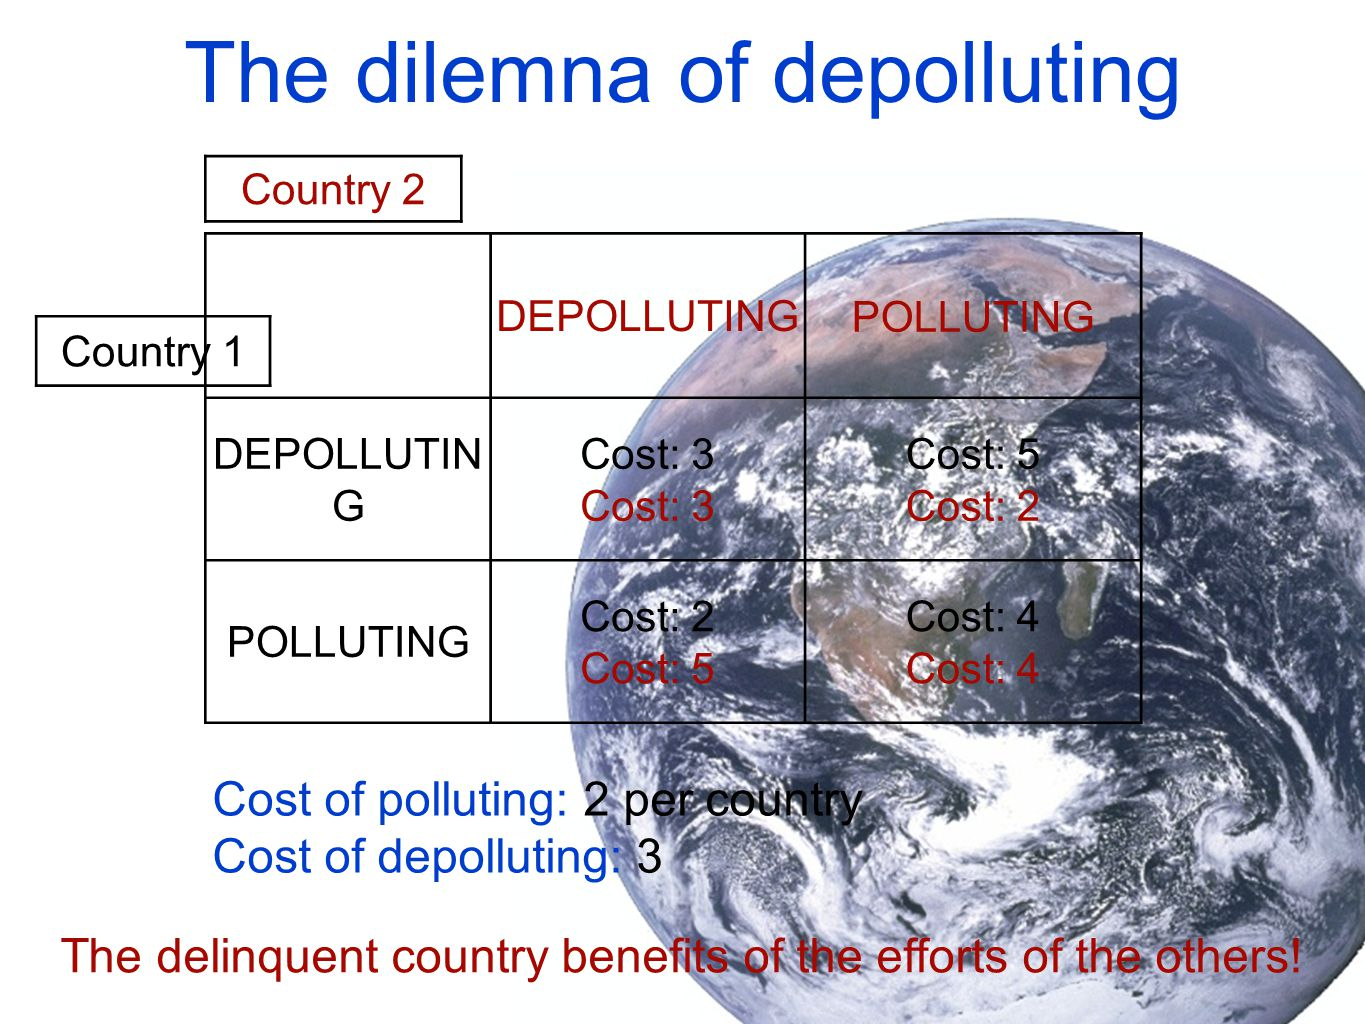 The dilemna of depolluting DEPOLLUTINGPOLLUTING DEPOLLUTIN G Cost: 3 Cost: 5 Cost: 2 POLLUTING Cost: 2 Cost: 5 Cost: 4 Country 2 Country 1 The delinquent country benefits of the efforts of the others.